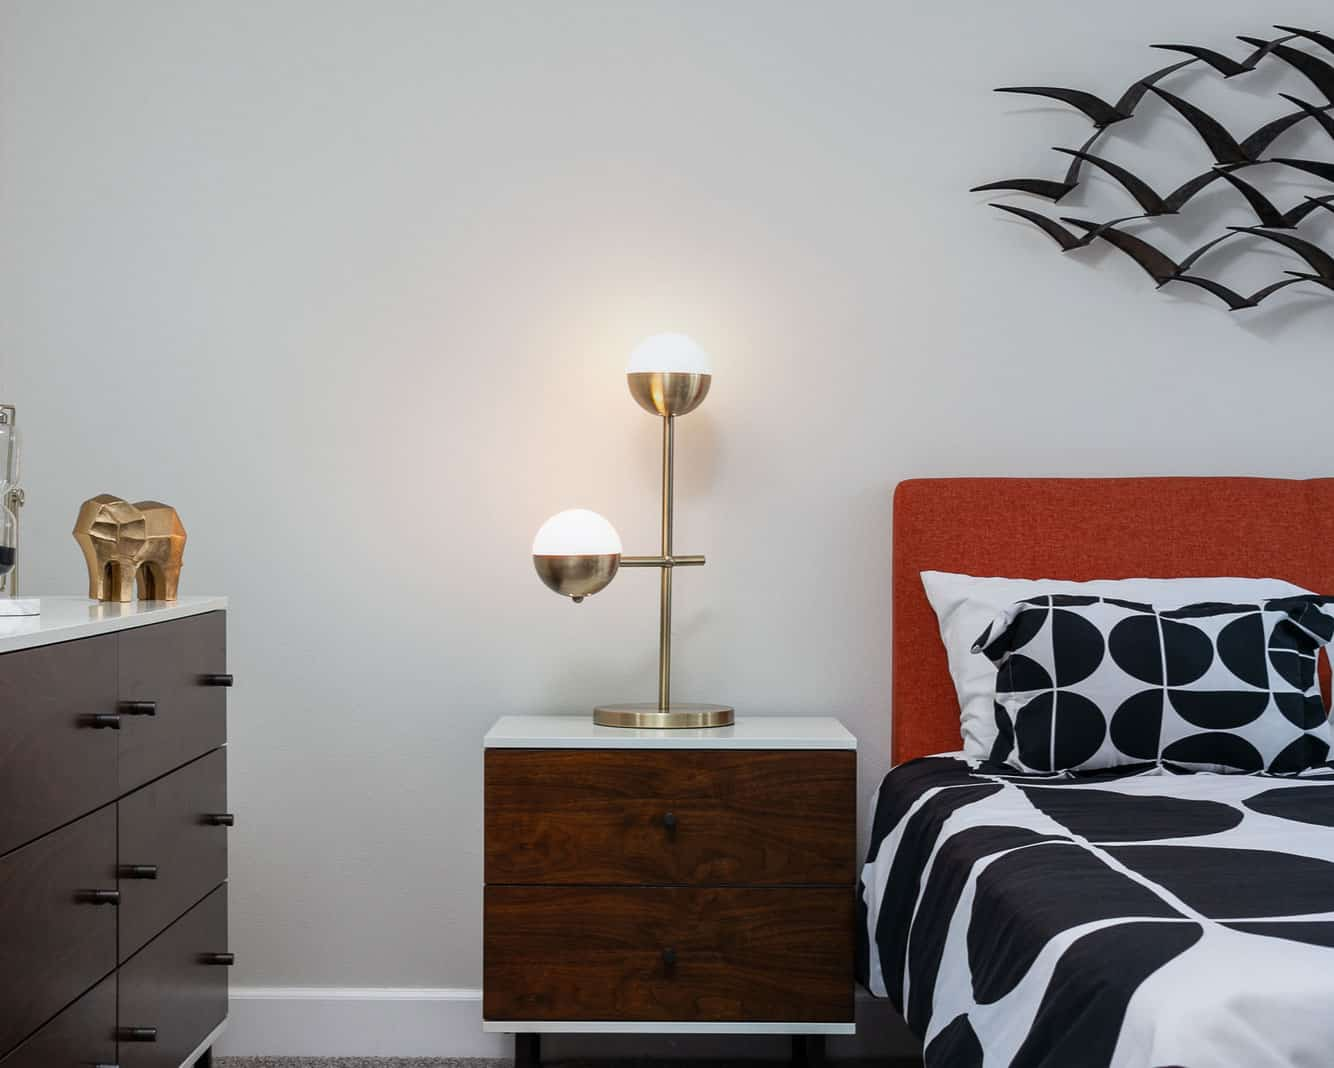 side table with lamp in between cabinet with gold elephant on top and a bed with orange head board, black and white bedding, and bird art sculpture above